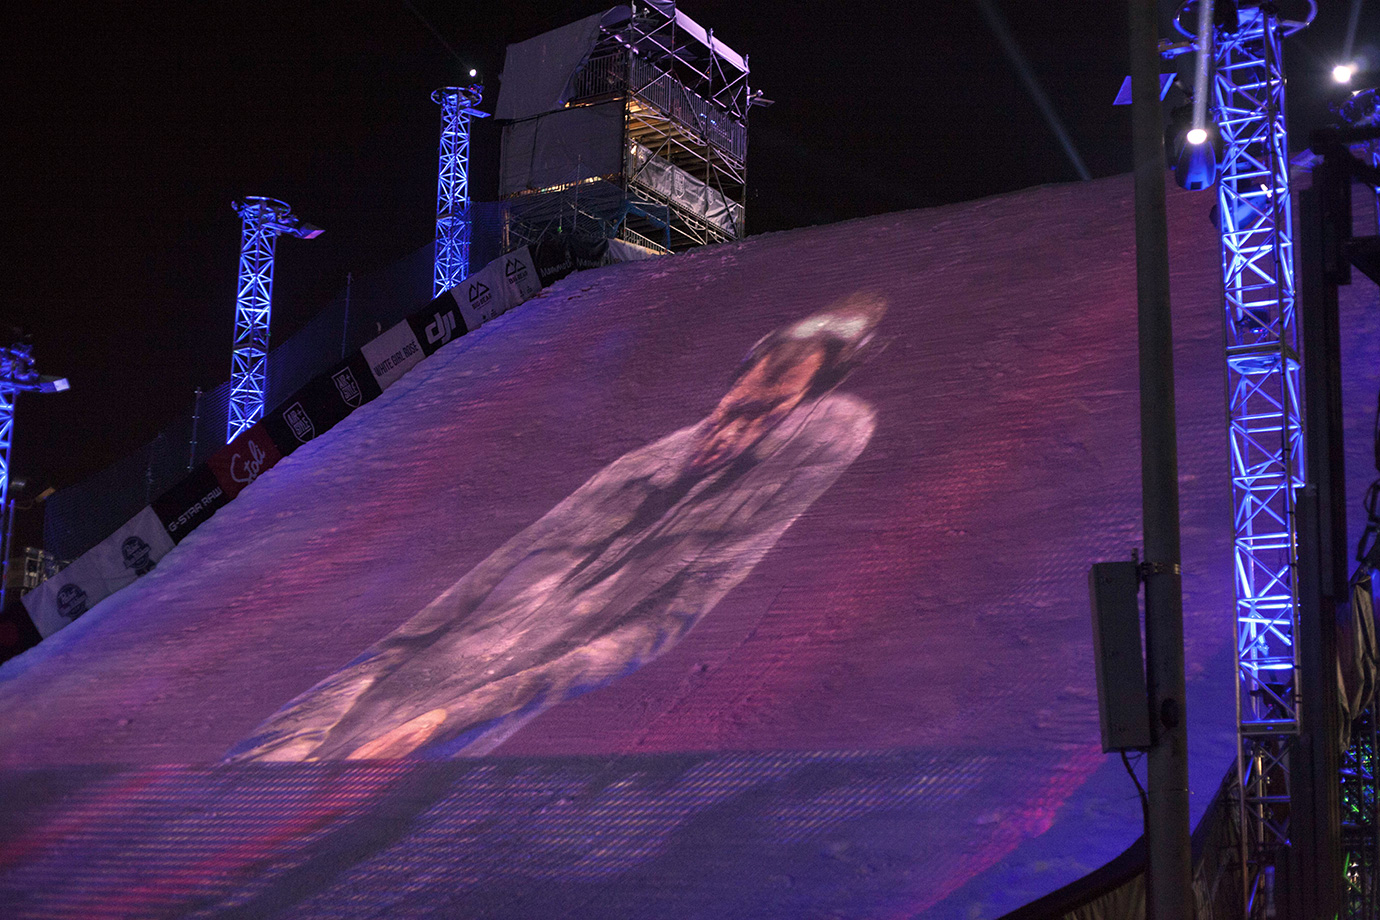 Kaskade's musical performance in between rounds is projected onto the face of the jump landing, marrying the two primary elements of Air+Style: music and snow.